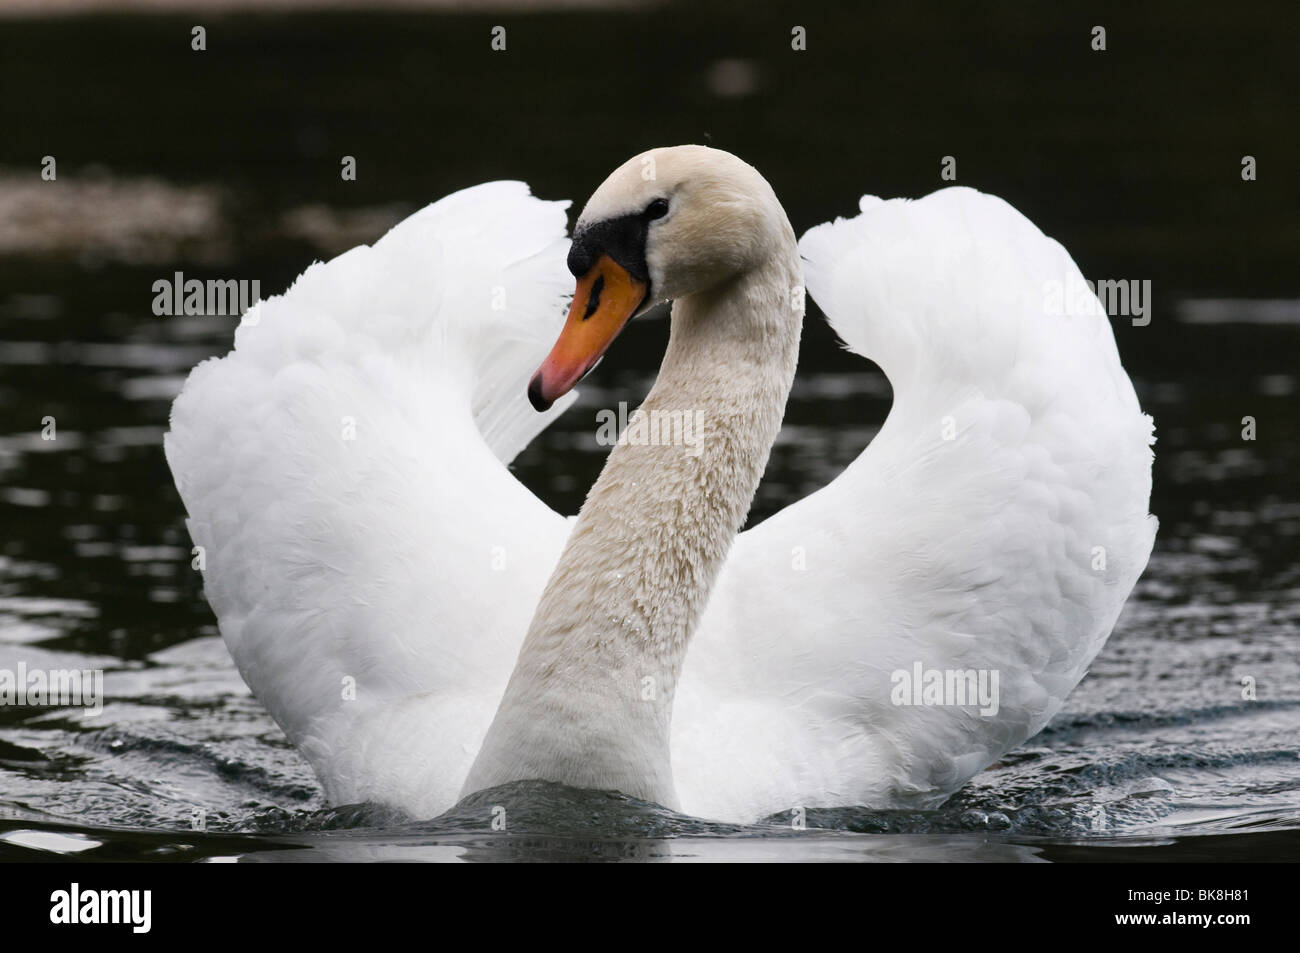 Mute Swan (Cygnus olor), swimming male in threat posture - Stock Image